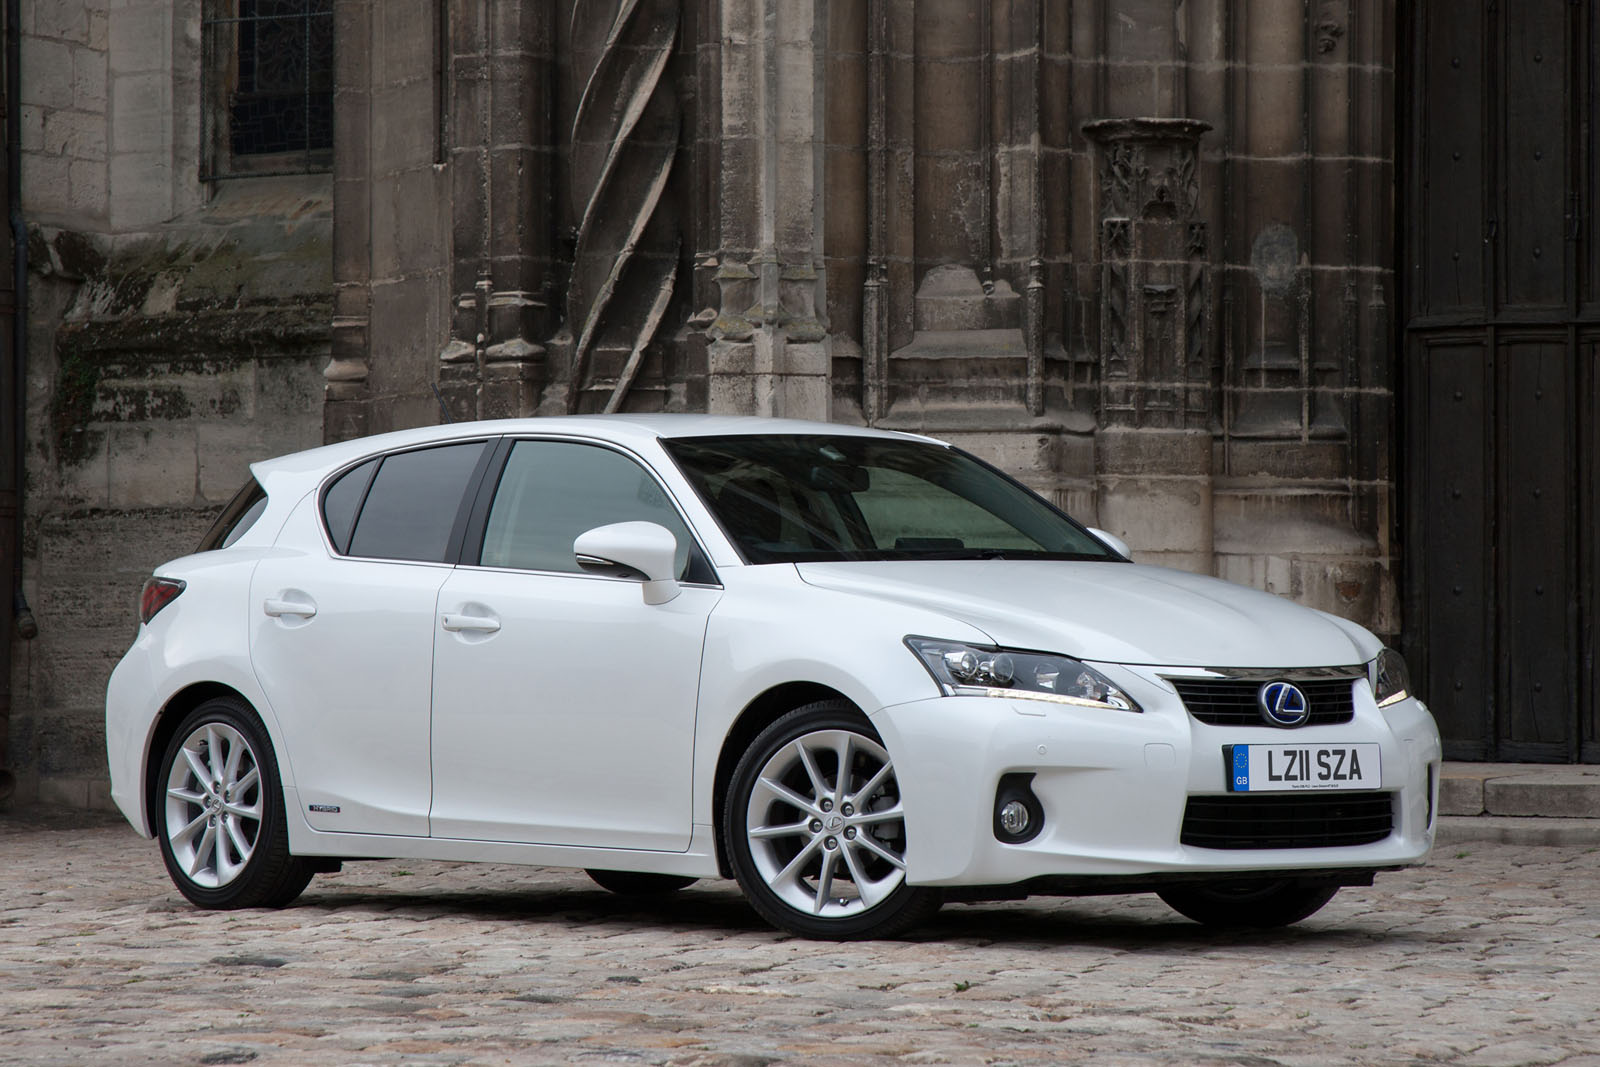 LEXUS CT200H COMPACT HYBRID RACE CAR  15